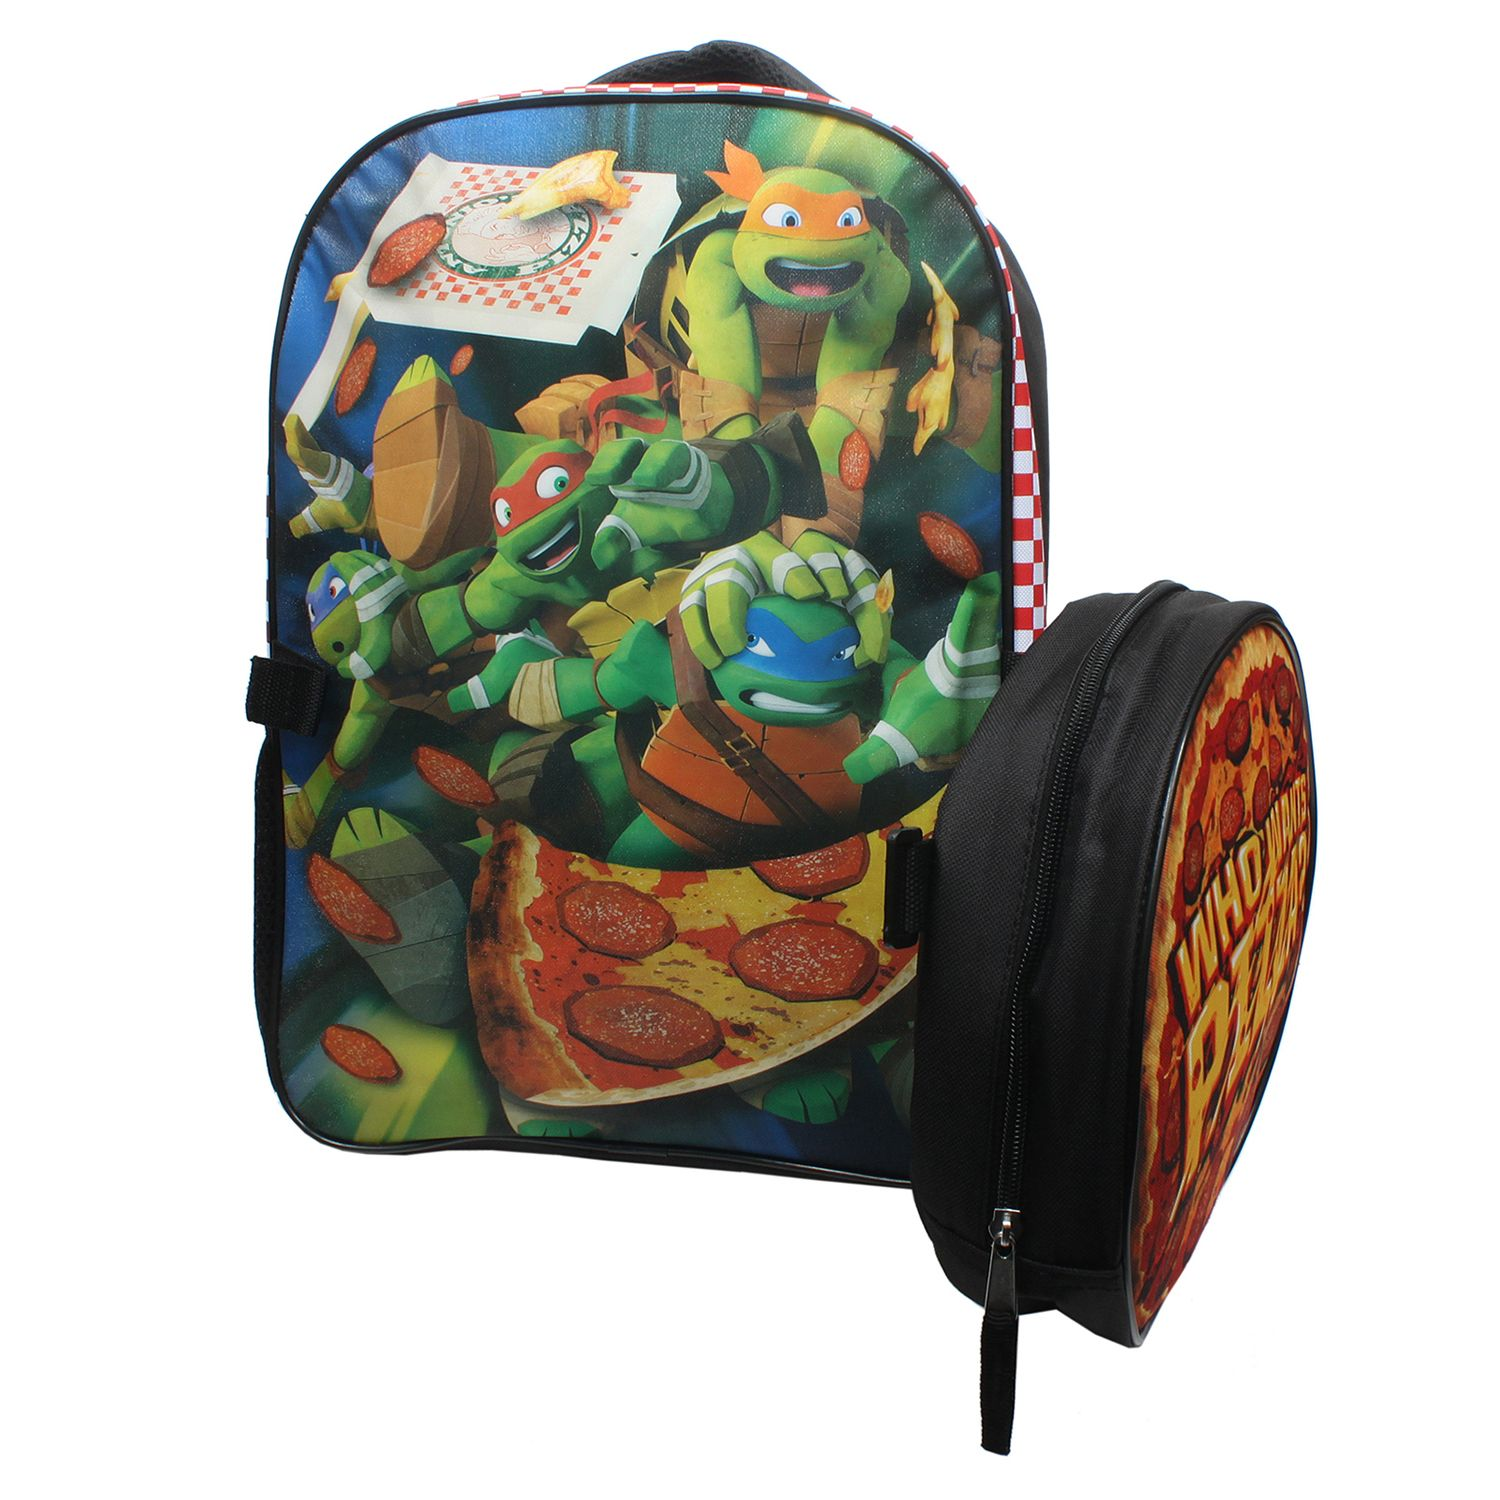 kids u0027 teenage mutant ninja turtles kohl u0027s